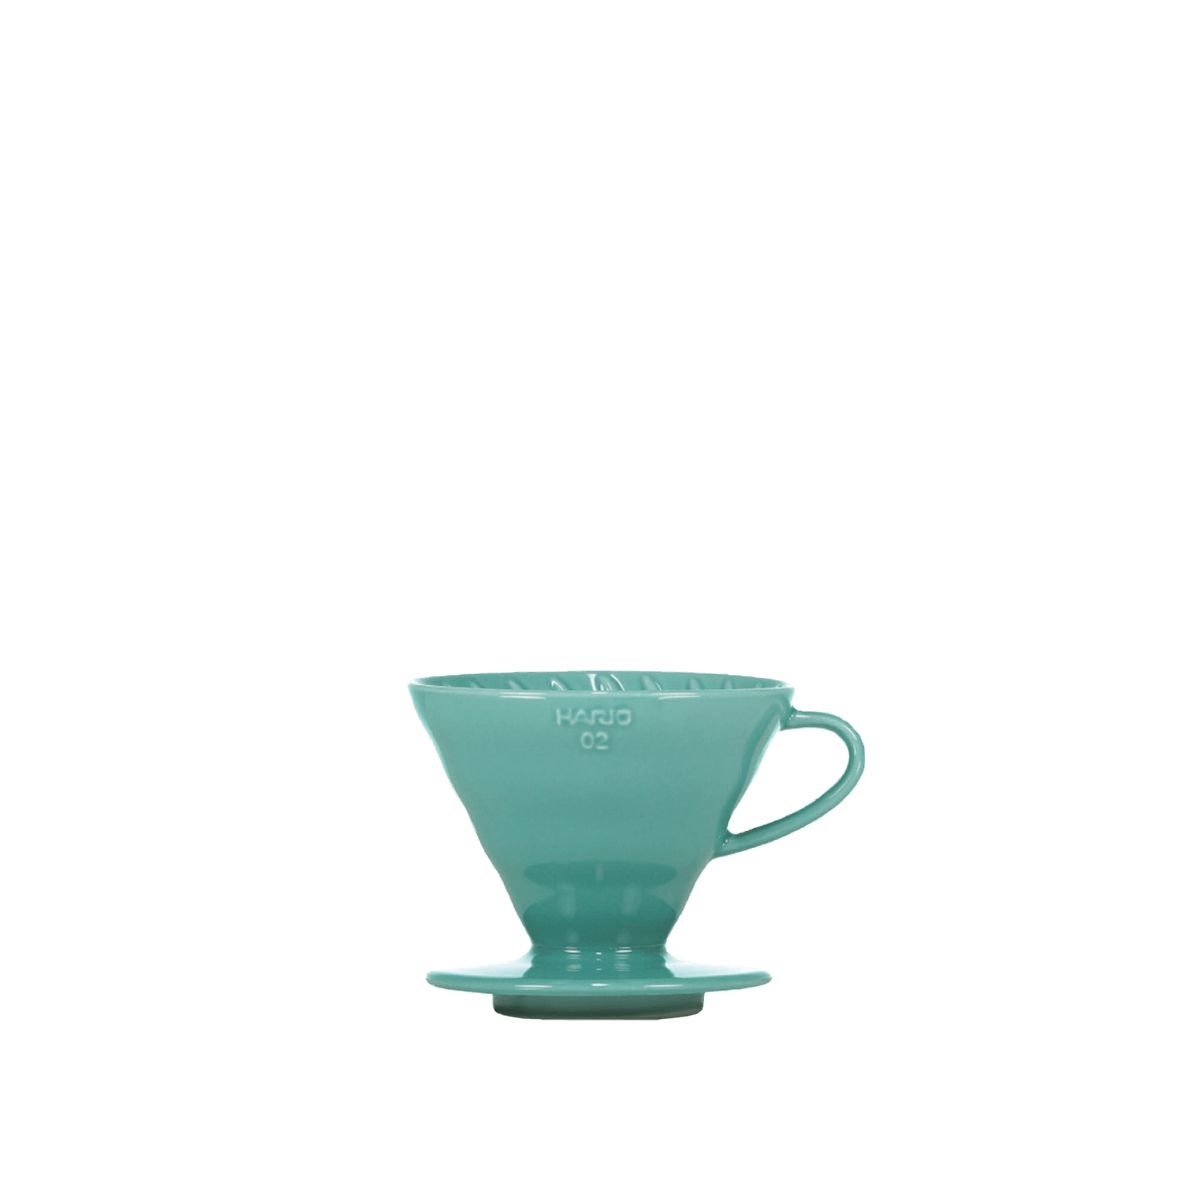 V60 Porcelain Dripper Hario [3/4 cups] - Turquoise green